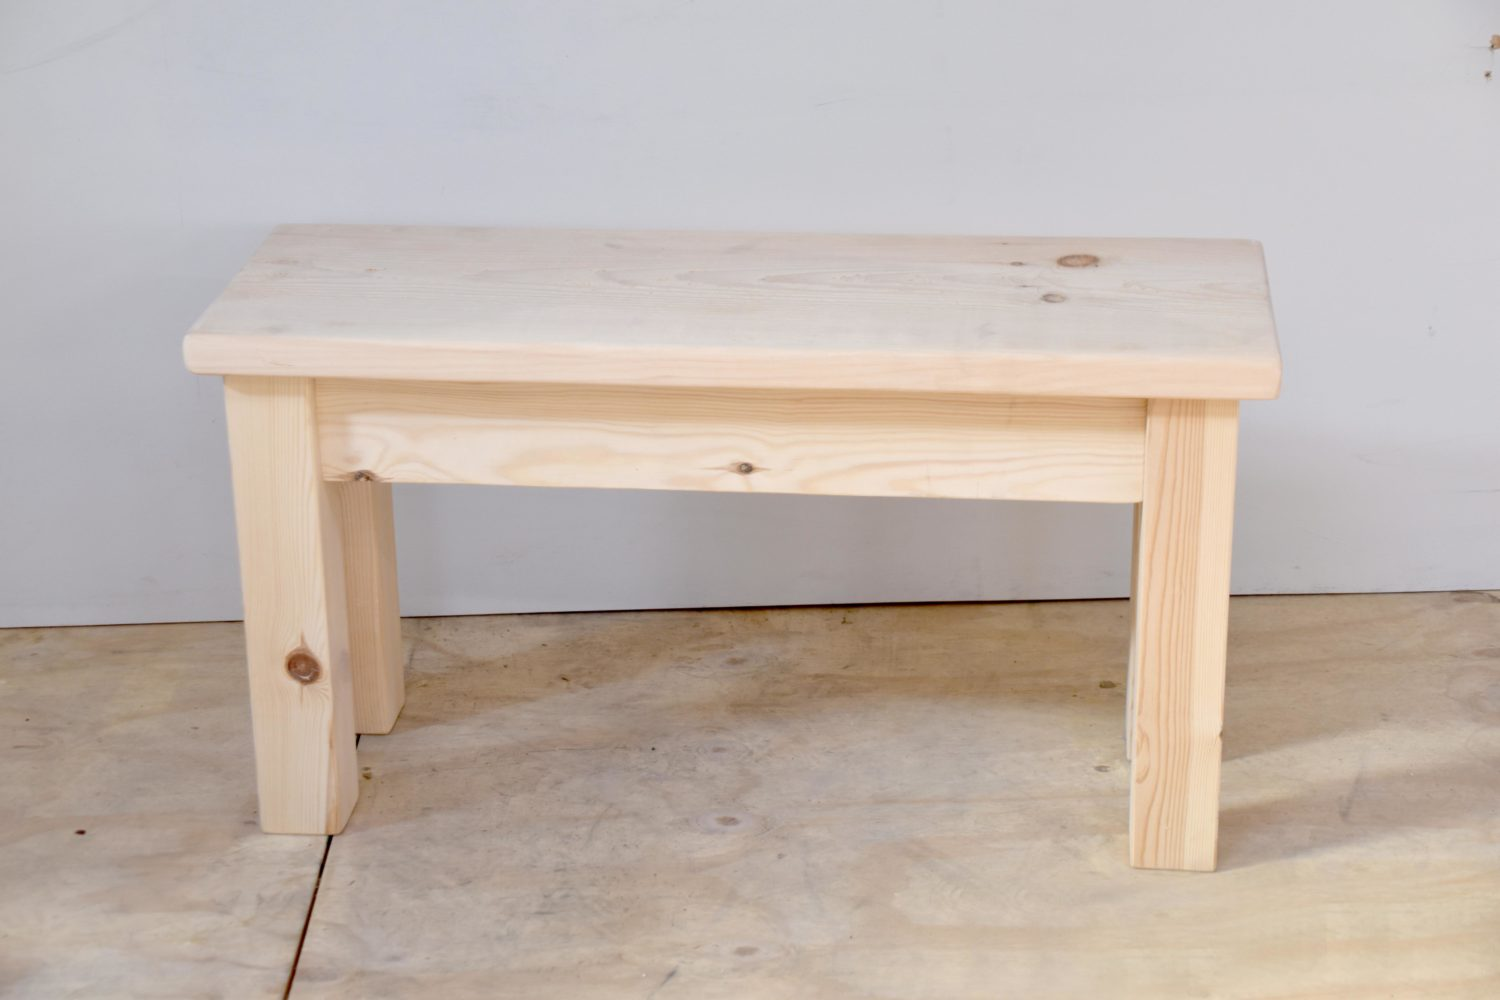 Small Square Leg Bench in the Mudd & Co factory sale 2020. Handcrafted kitchen and home furniture